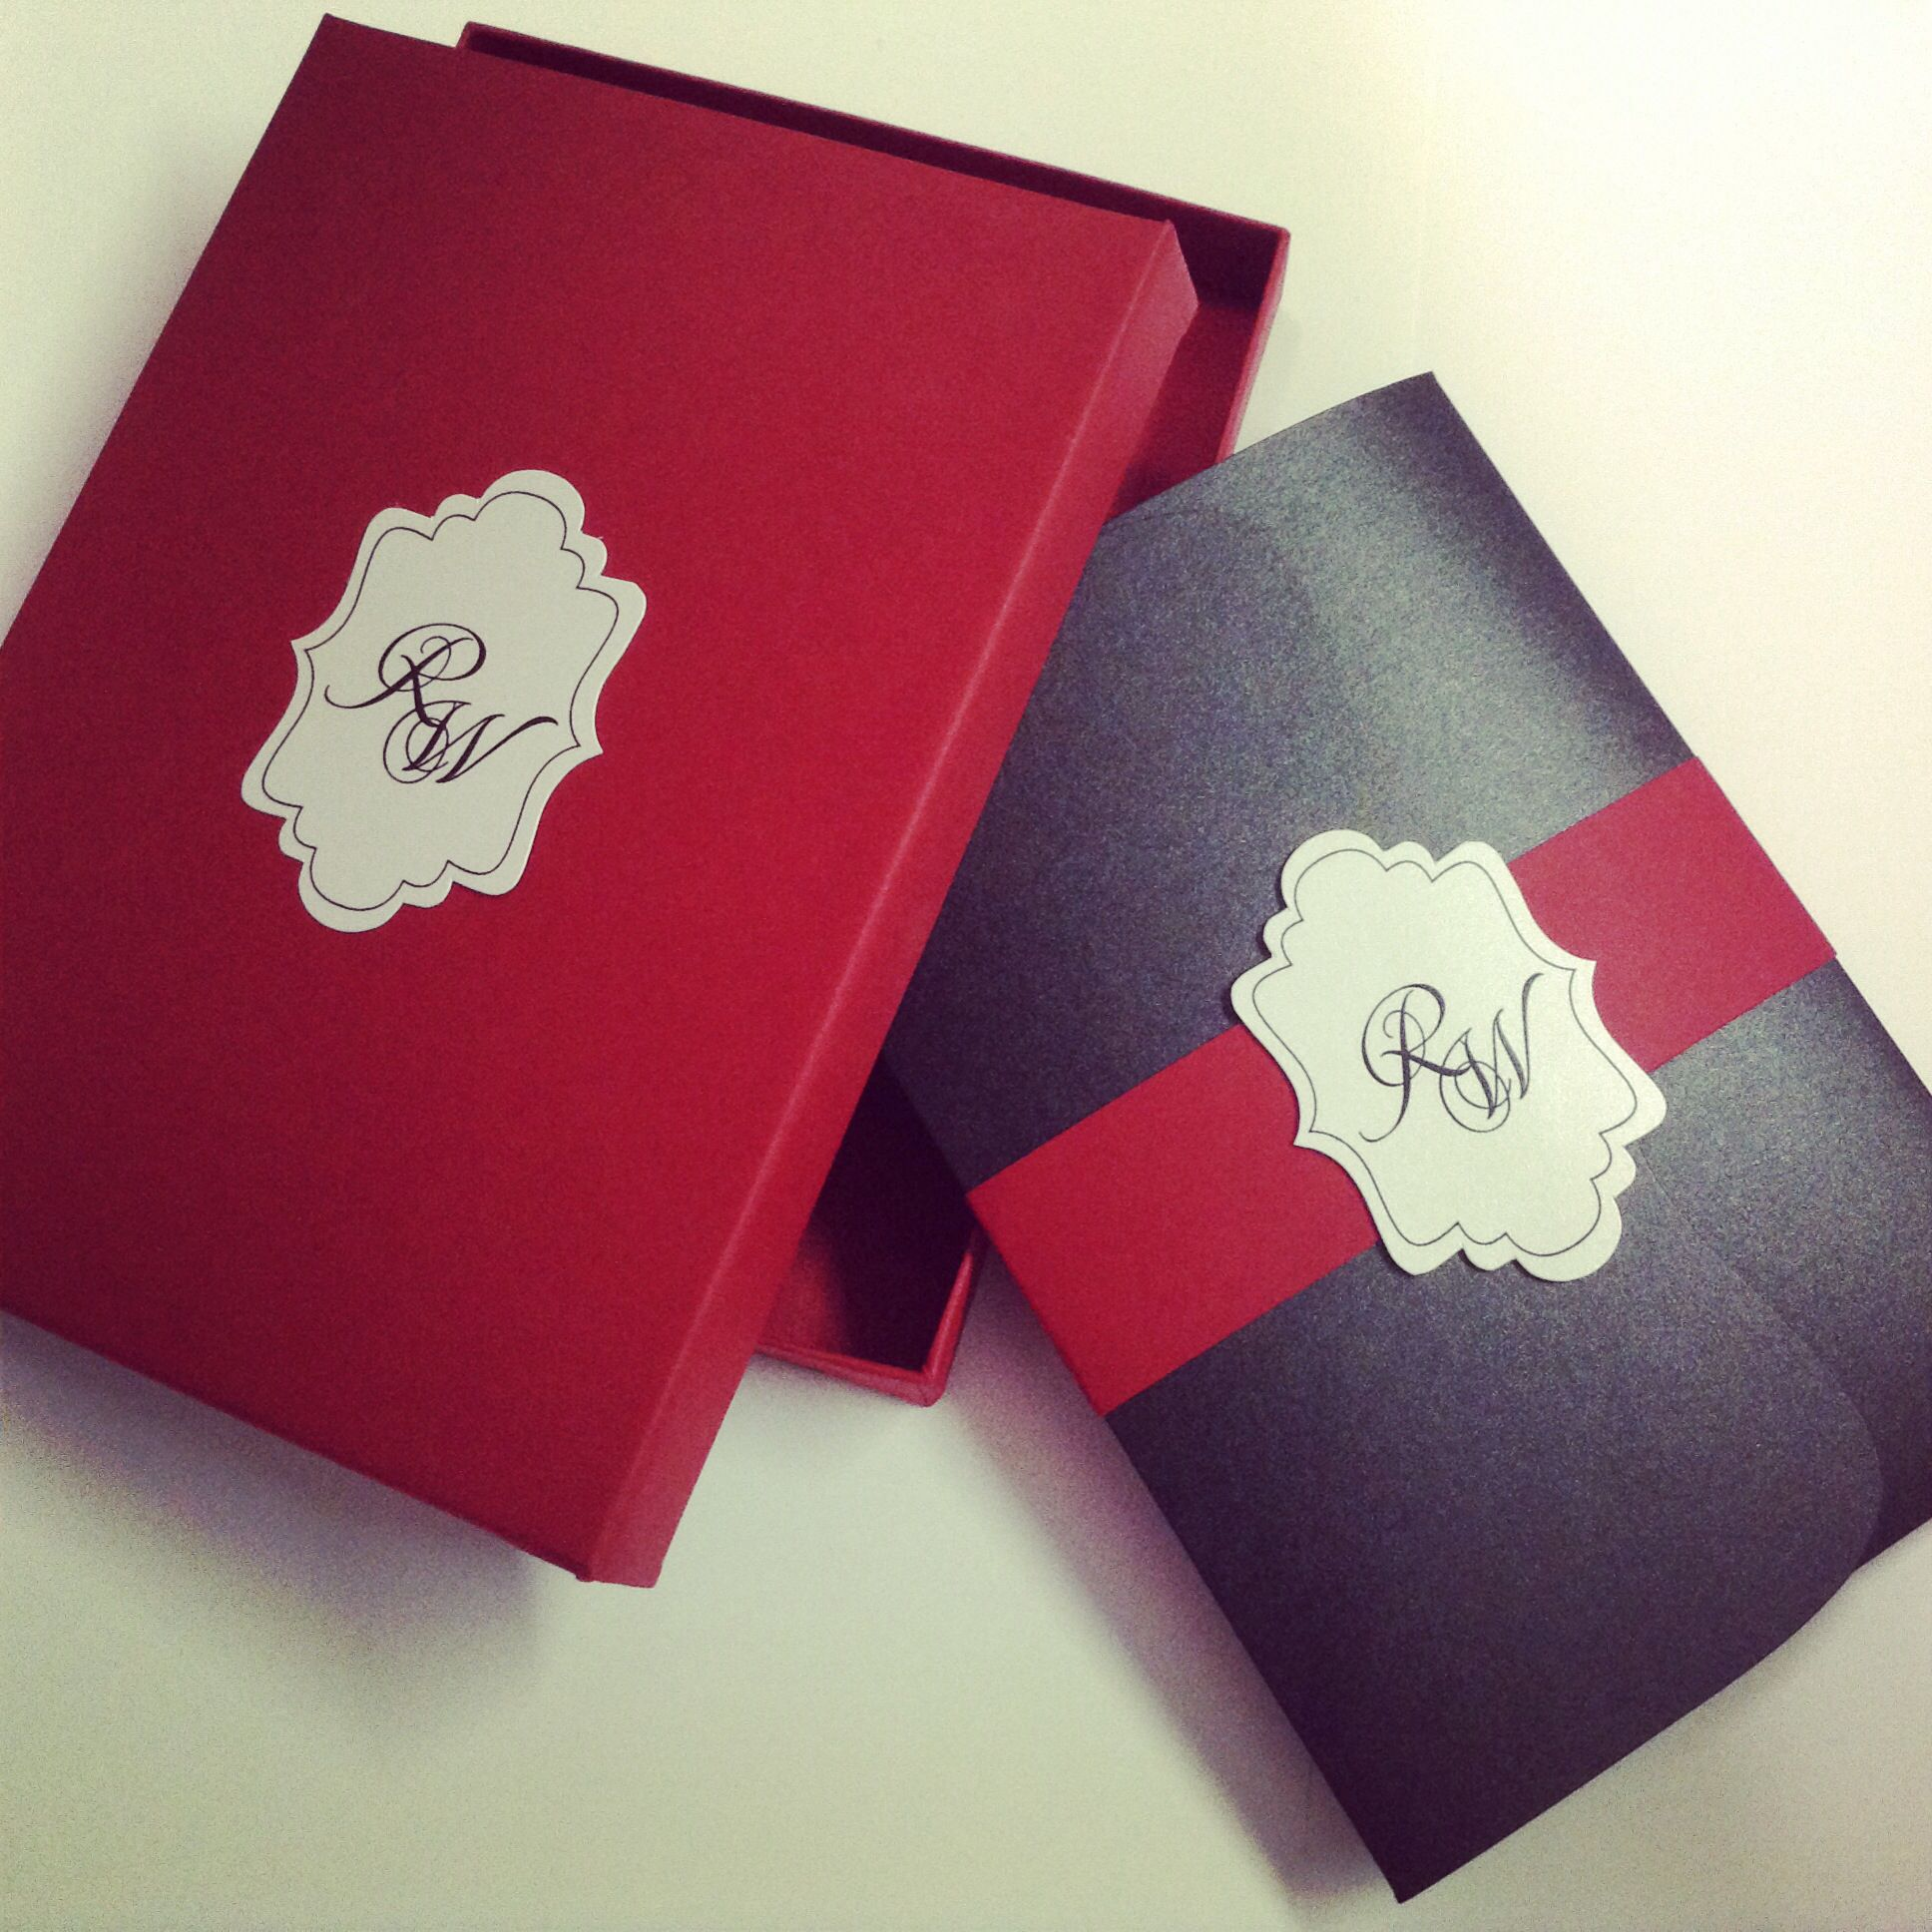 Savannah pocket invitation in red and black by www.sandispells.com ...